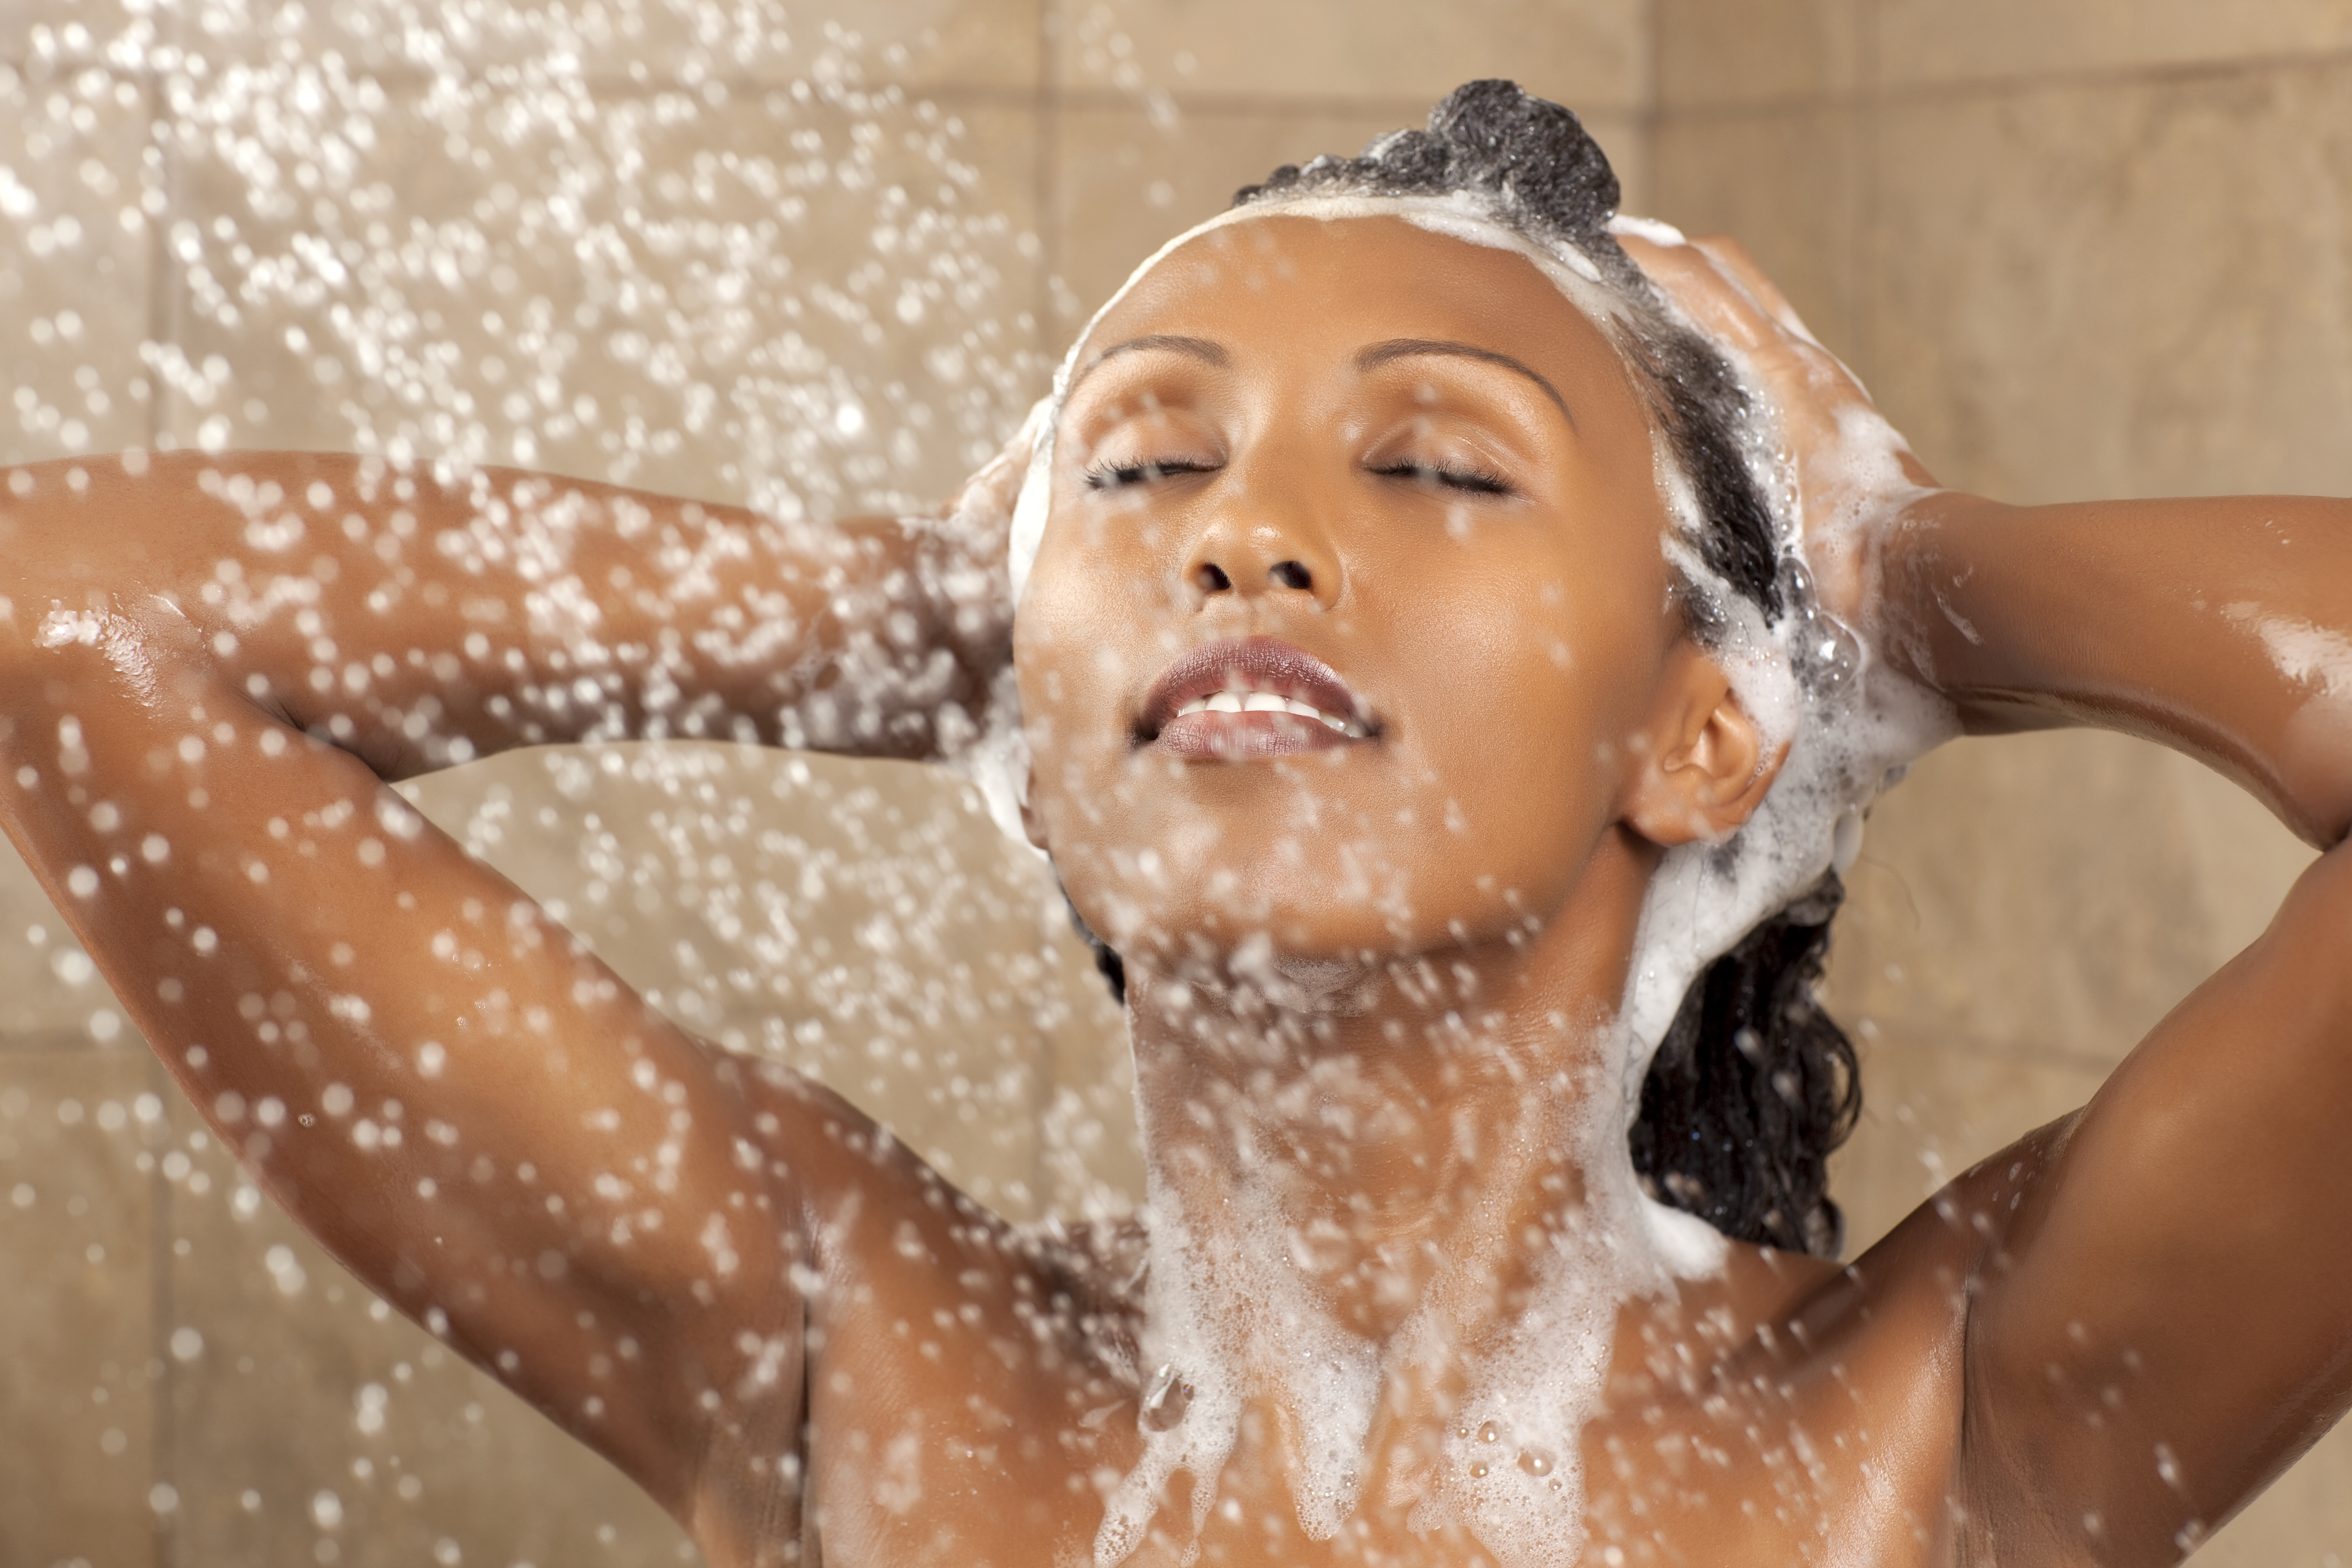 Attractive woman taking shower.